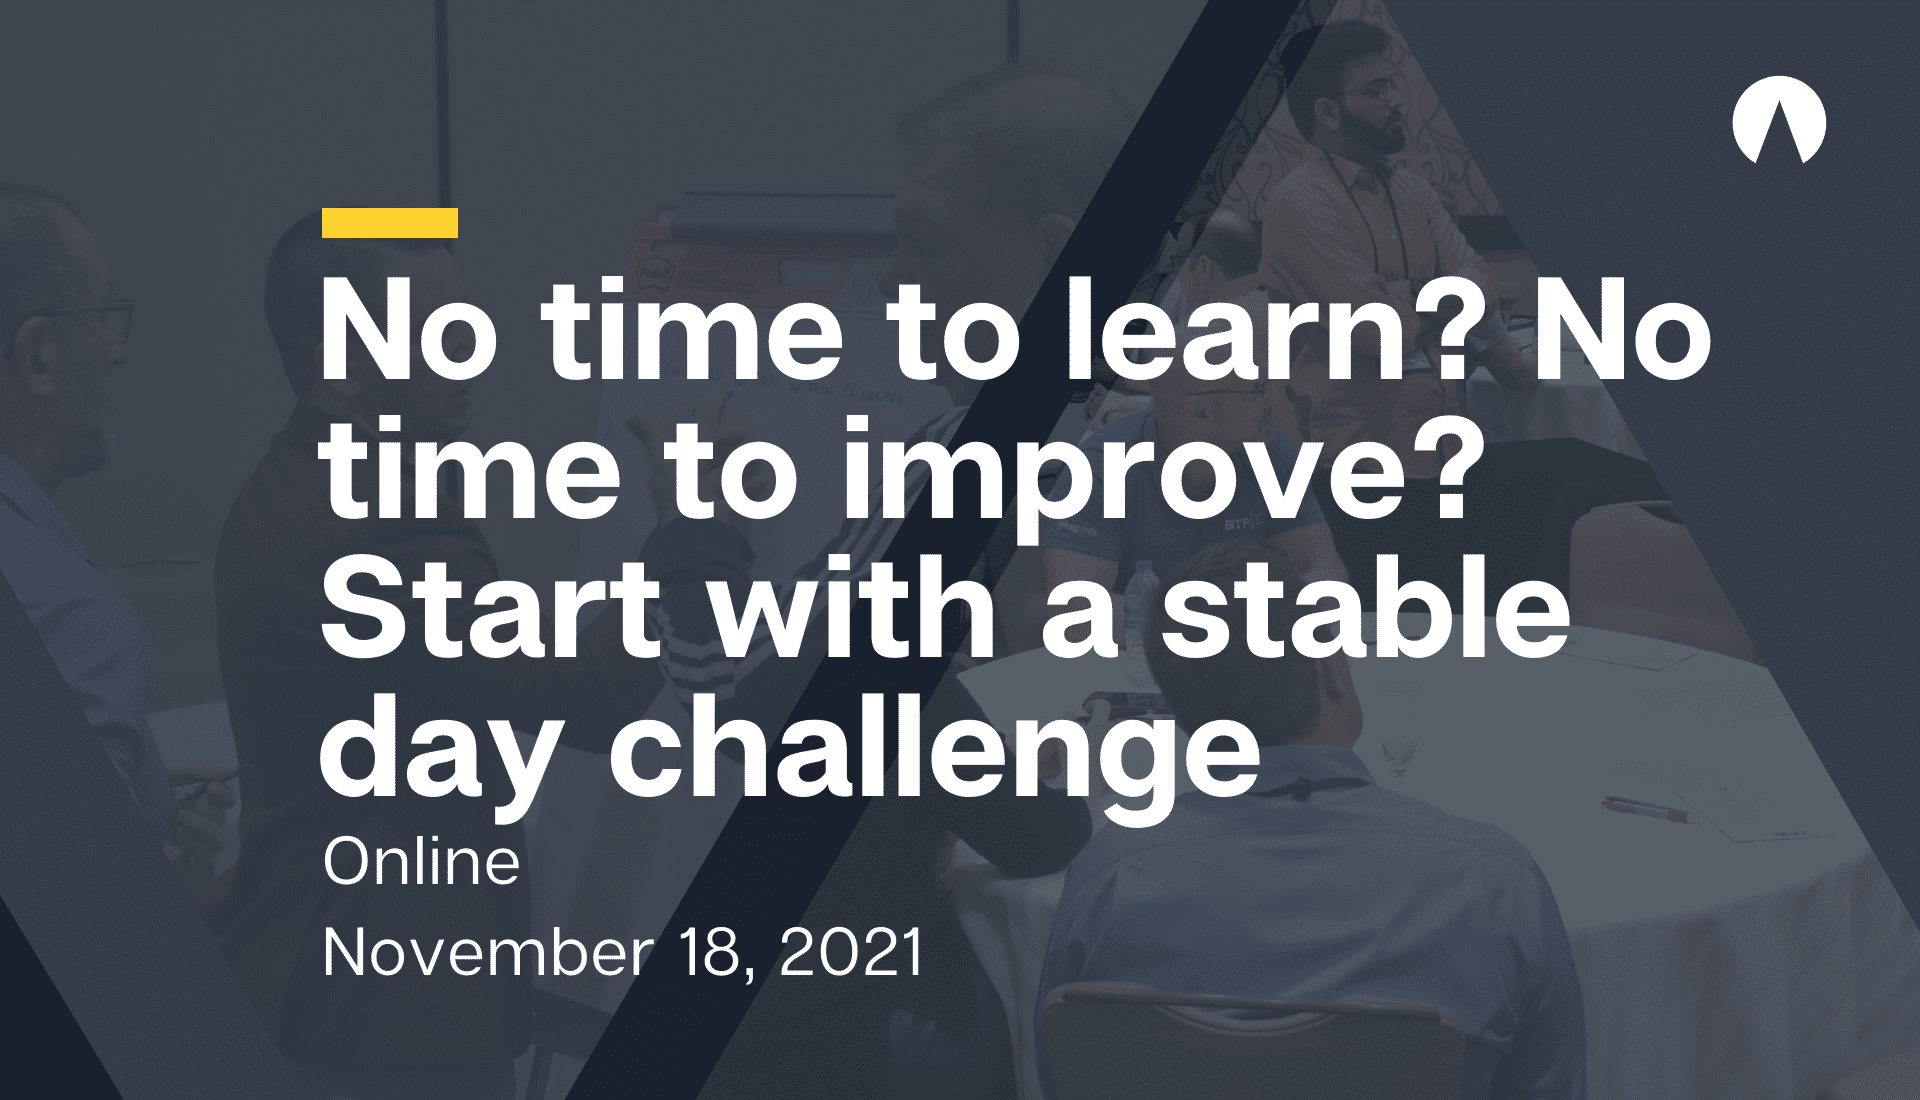 No time to learn? No time to improve? Start with a stable day challenge